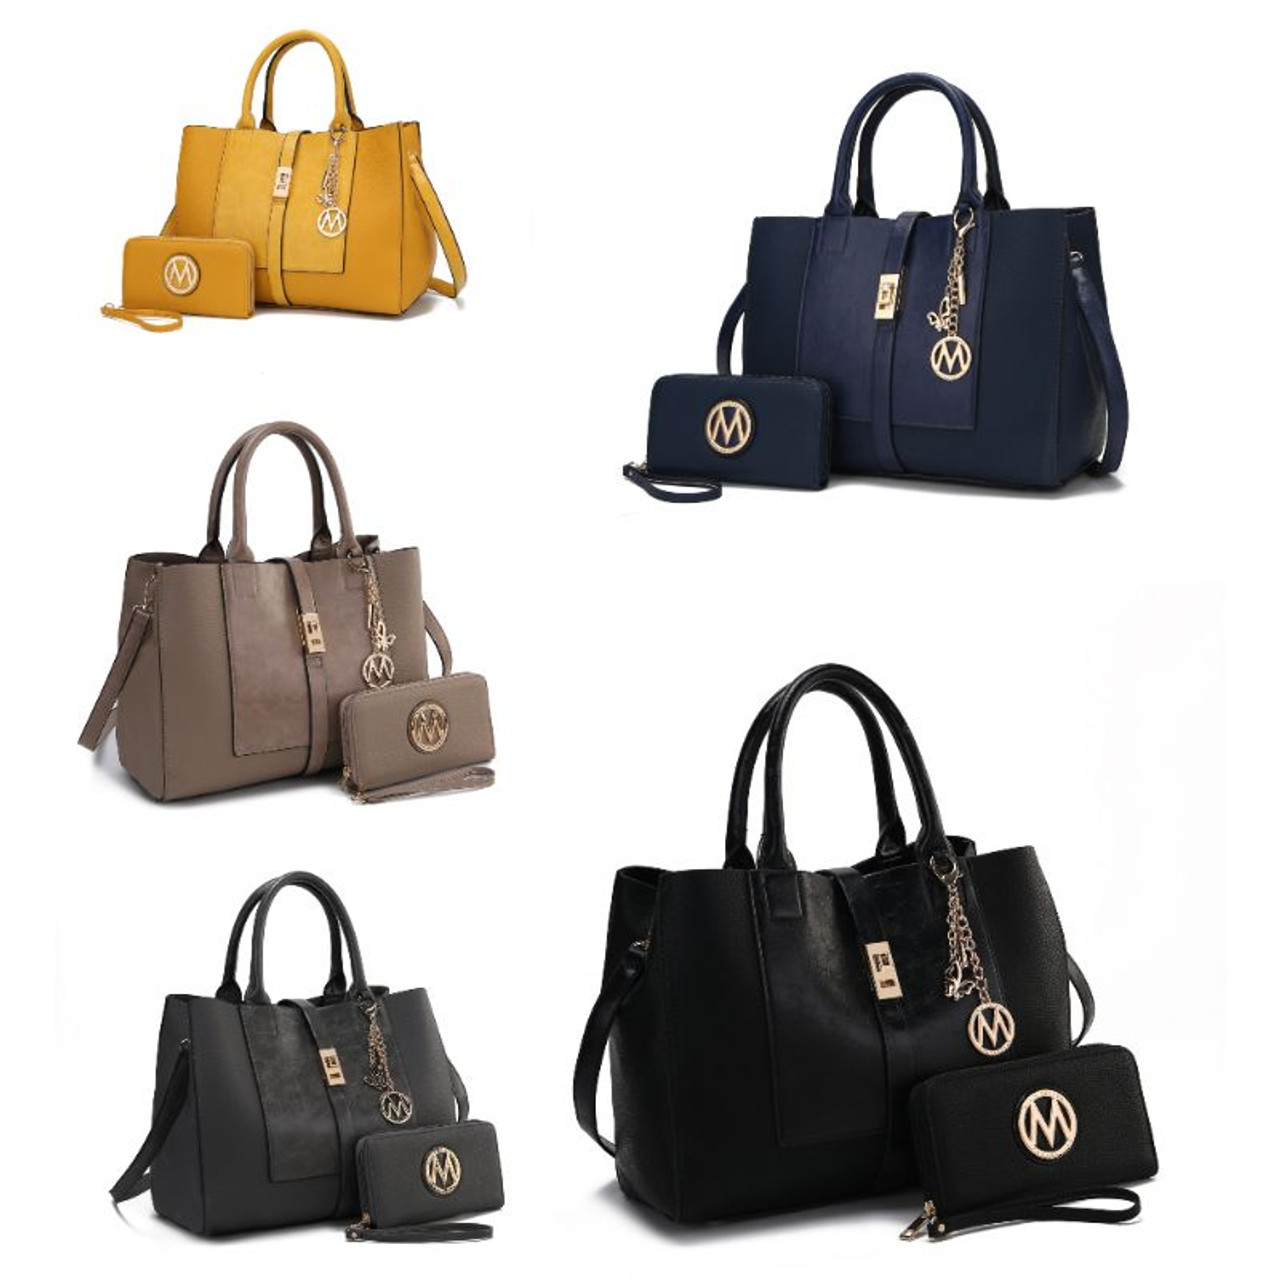 MKF Collection Yola Satchel Bag With Matching Wallet